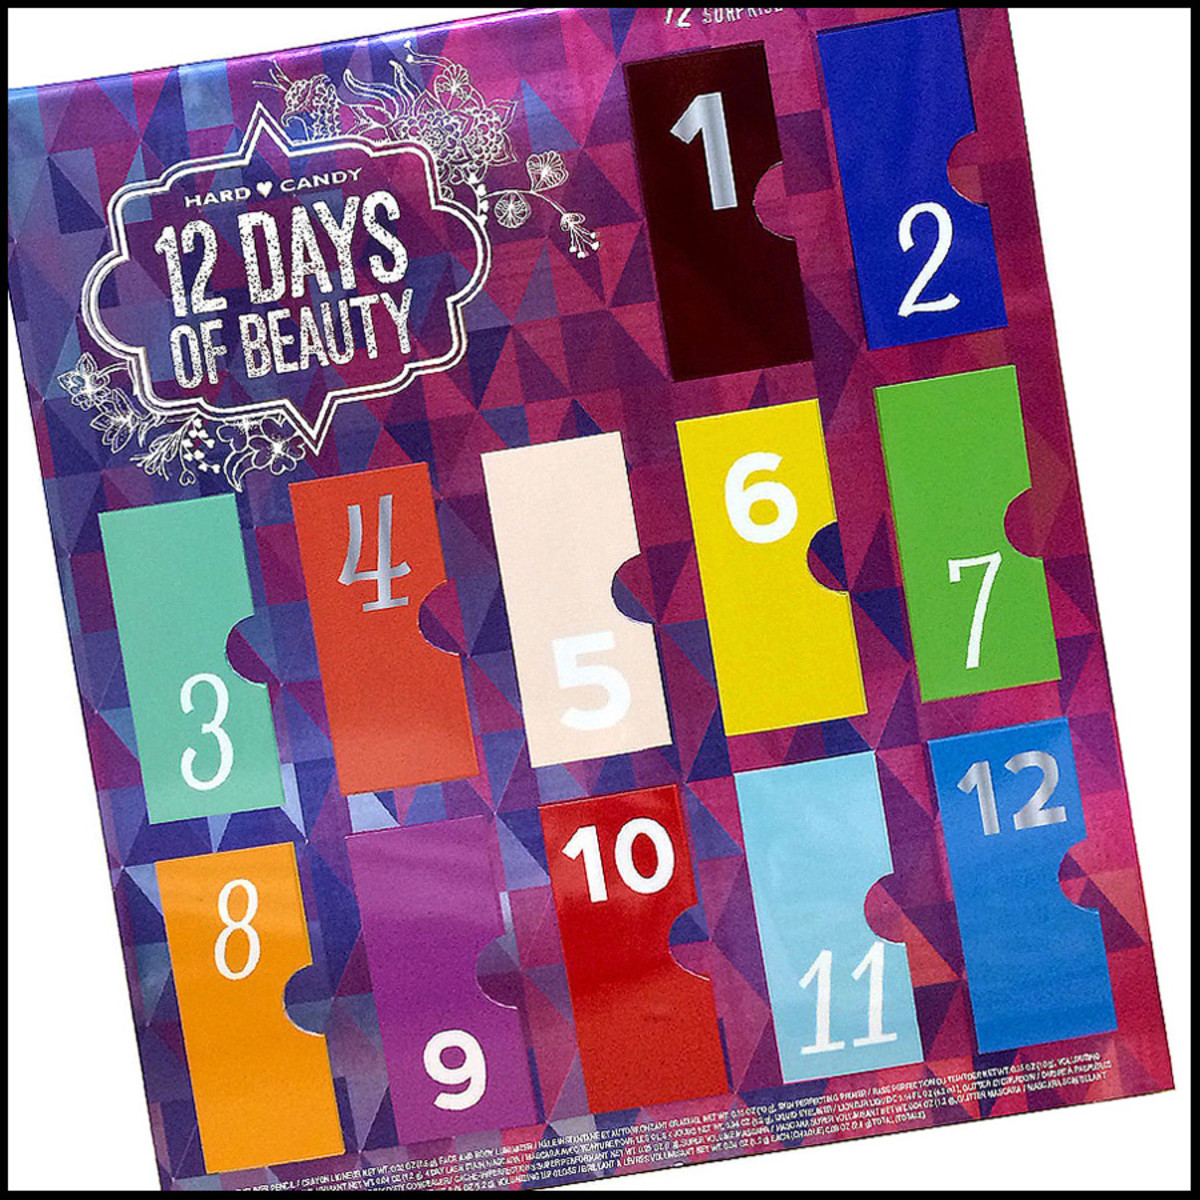 advent calendars 2014_Hard Candy 12 Days of Beauty_pseudo advent calendar 2014